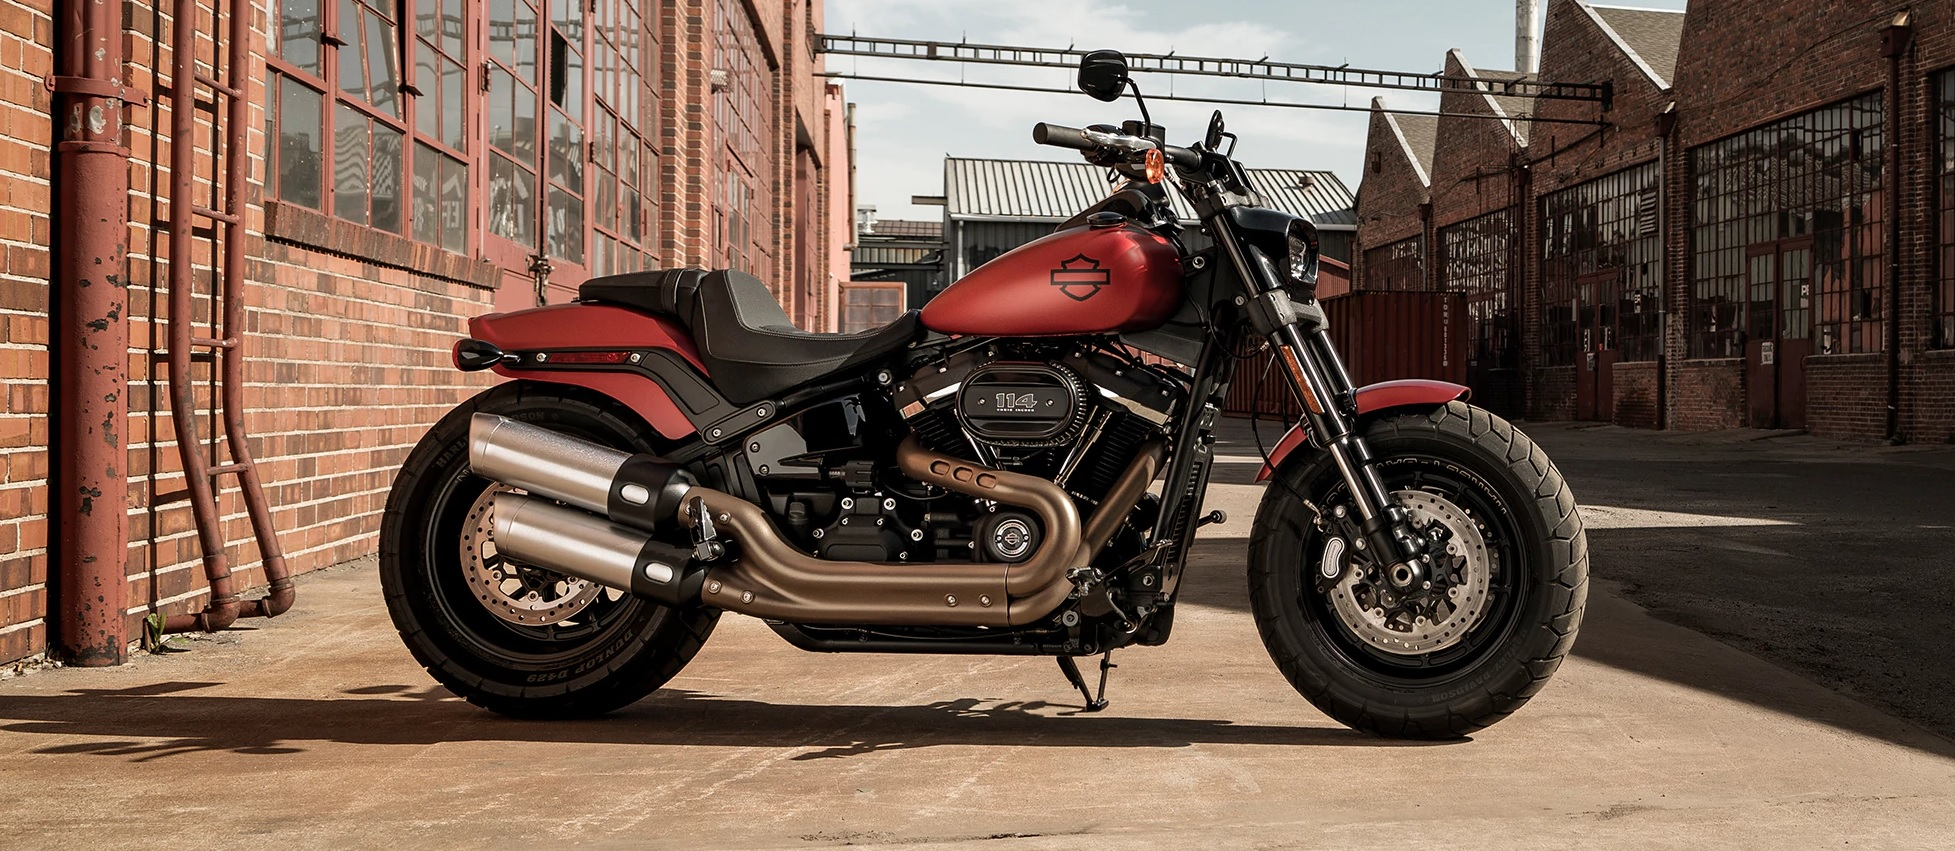 2019 Harley-Davidson Fat Bob near Columbia MD